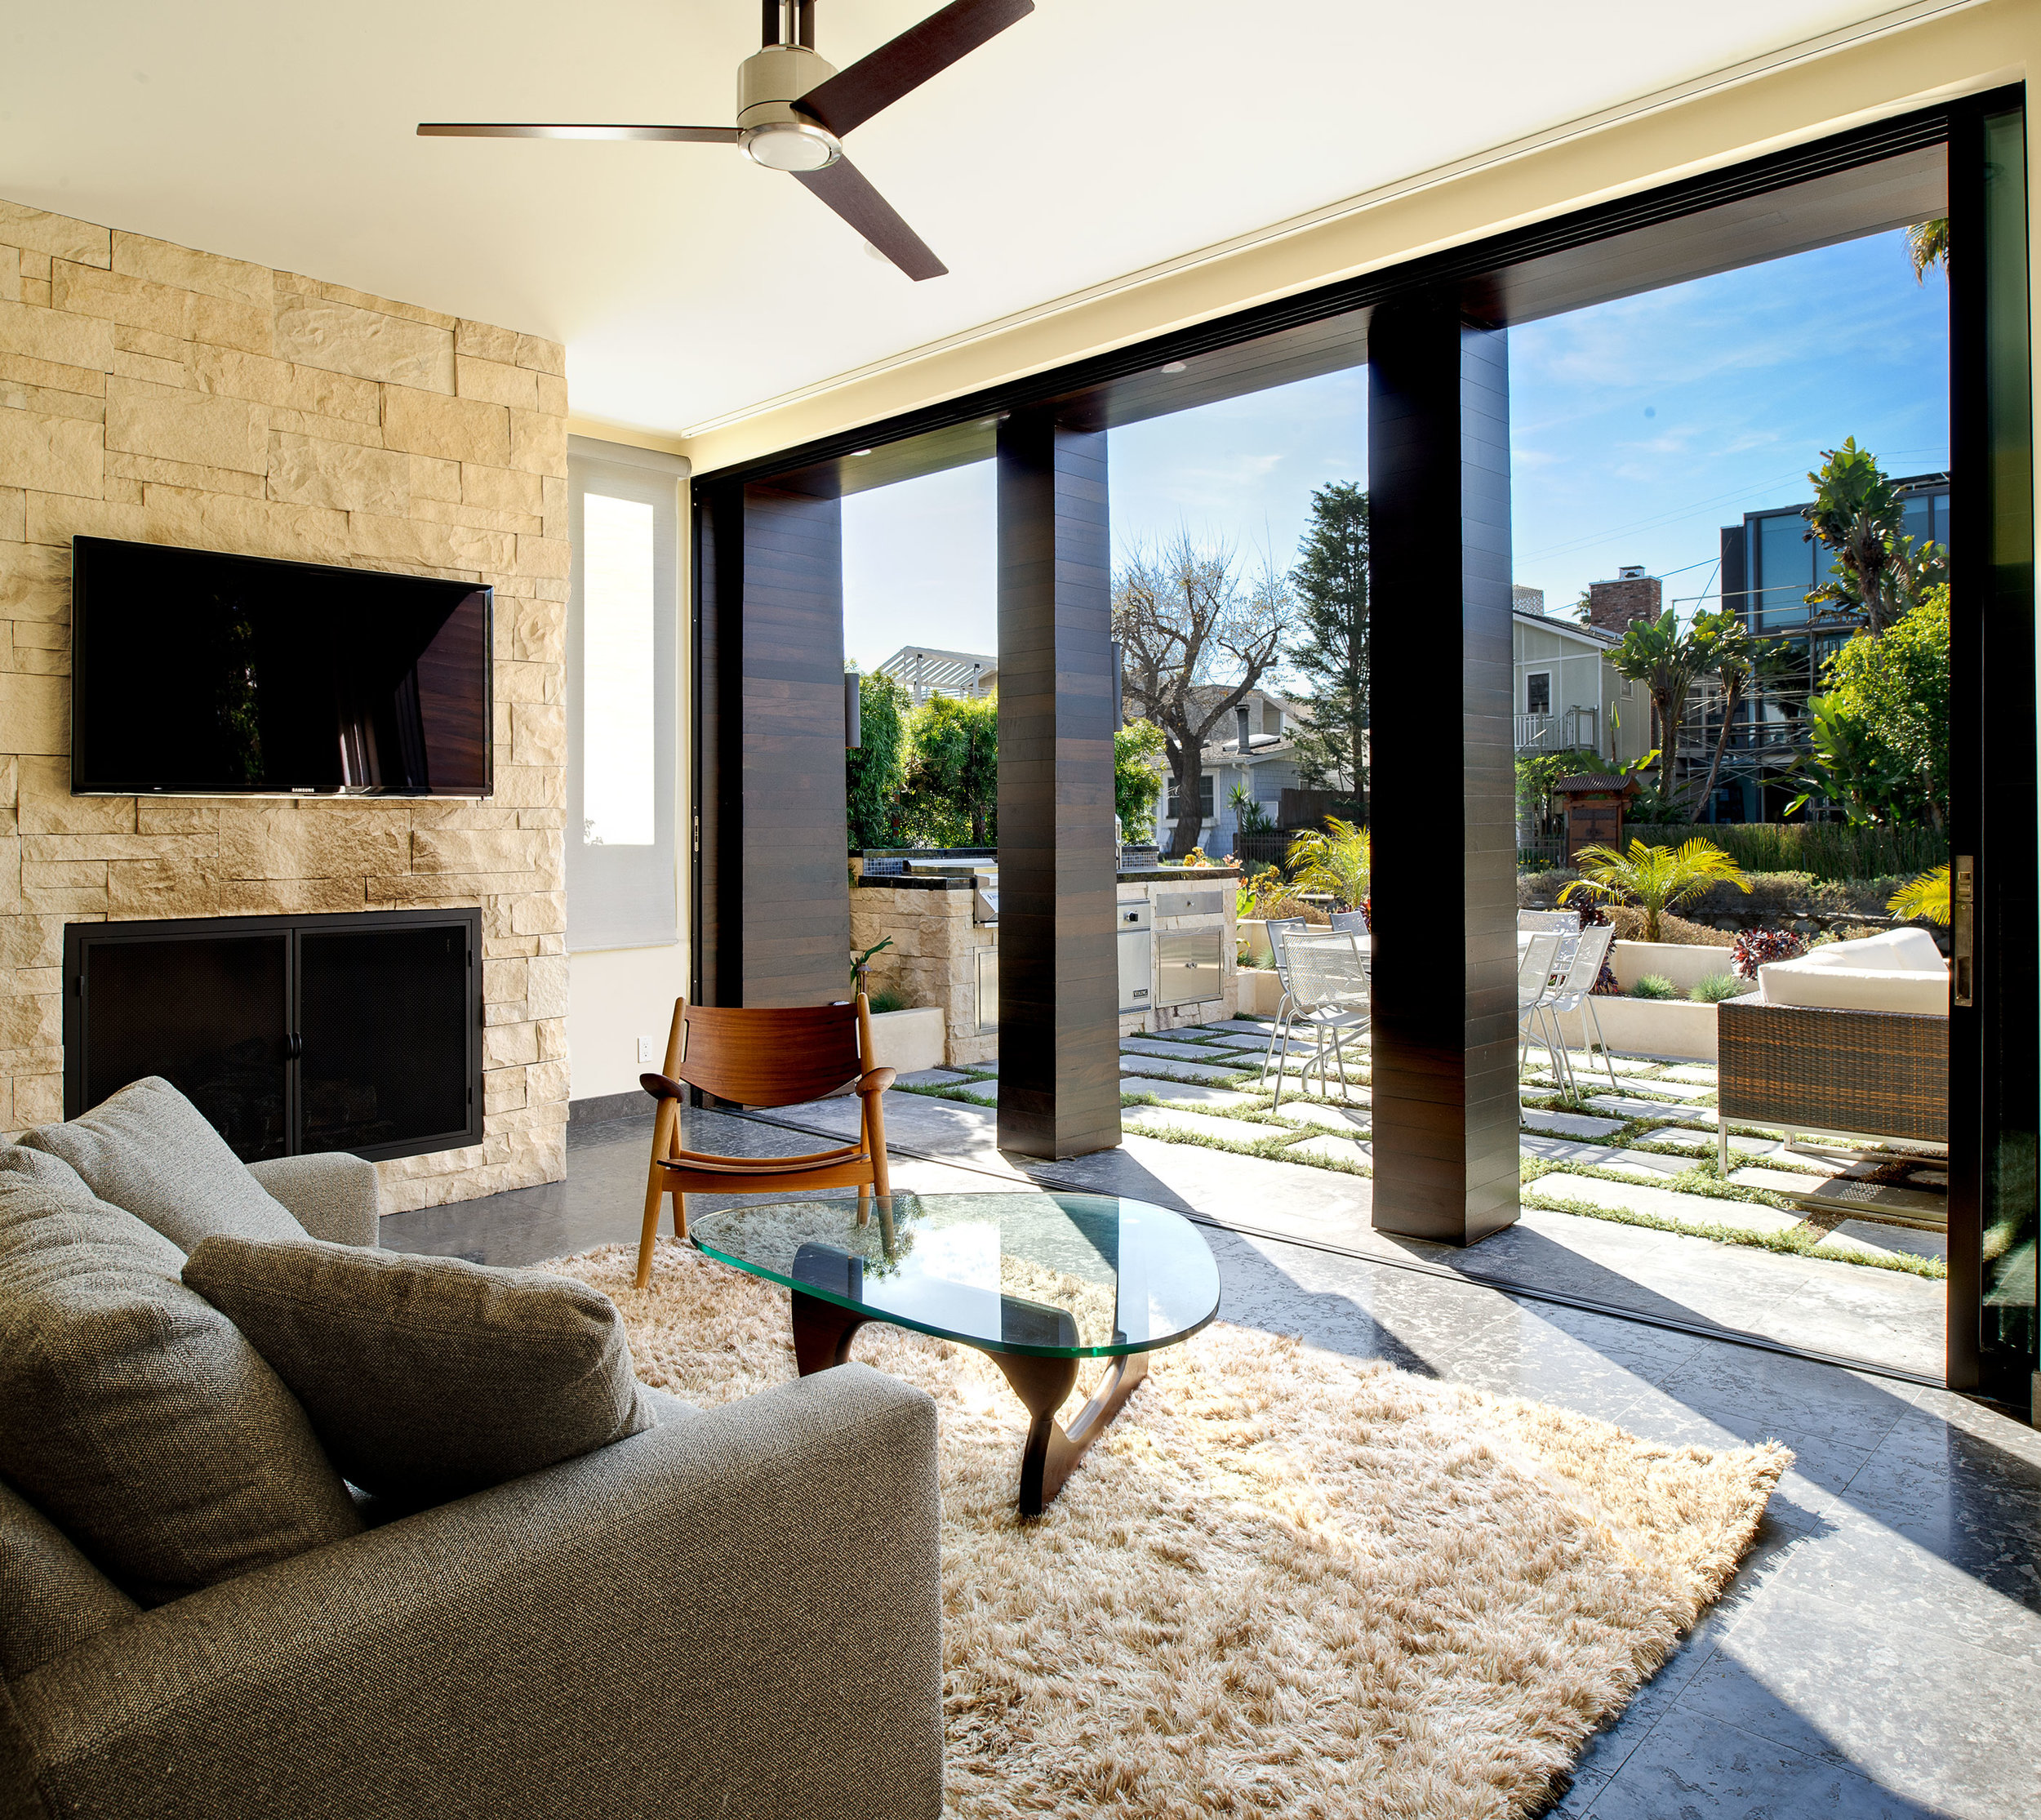 5-Los-Angeles-Indoor-outdoor-living-SiliconBay-open-concept.jpg